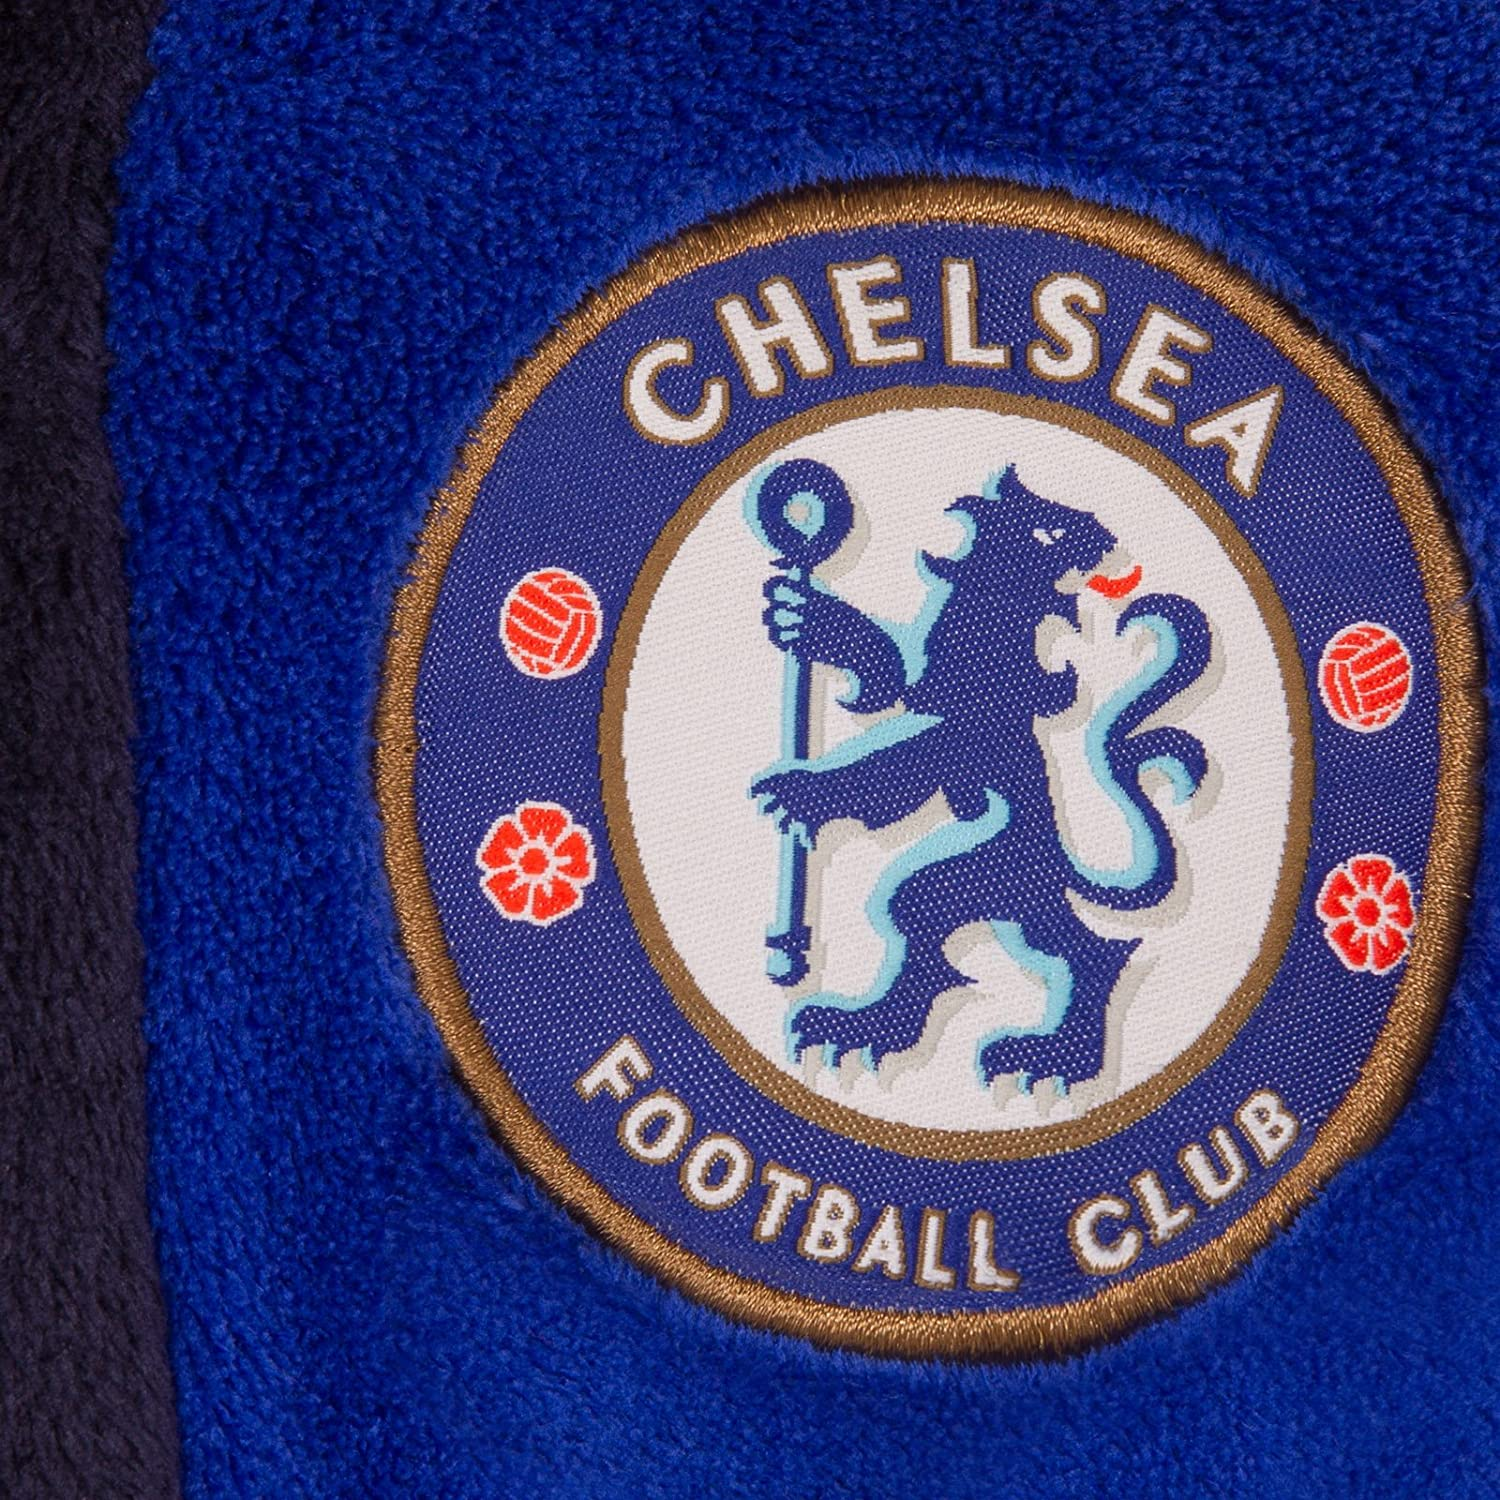 Robe de chambre /à capuche th/ème football gar/çon polaire Chelsea FC officiel